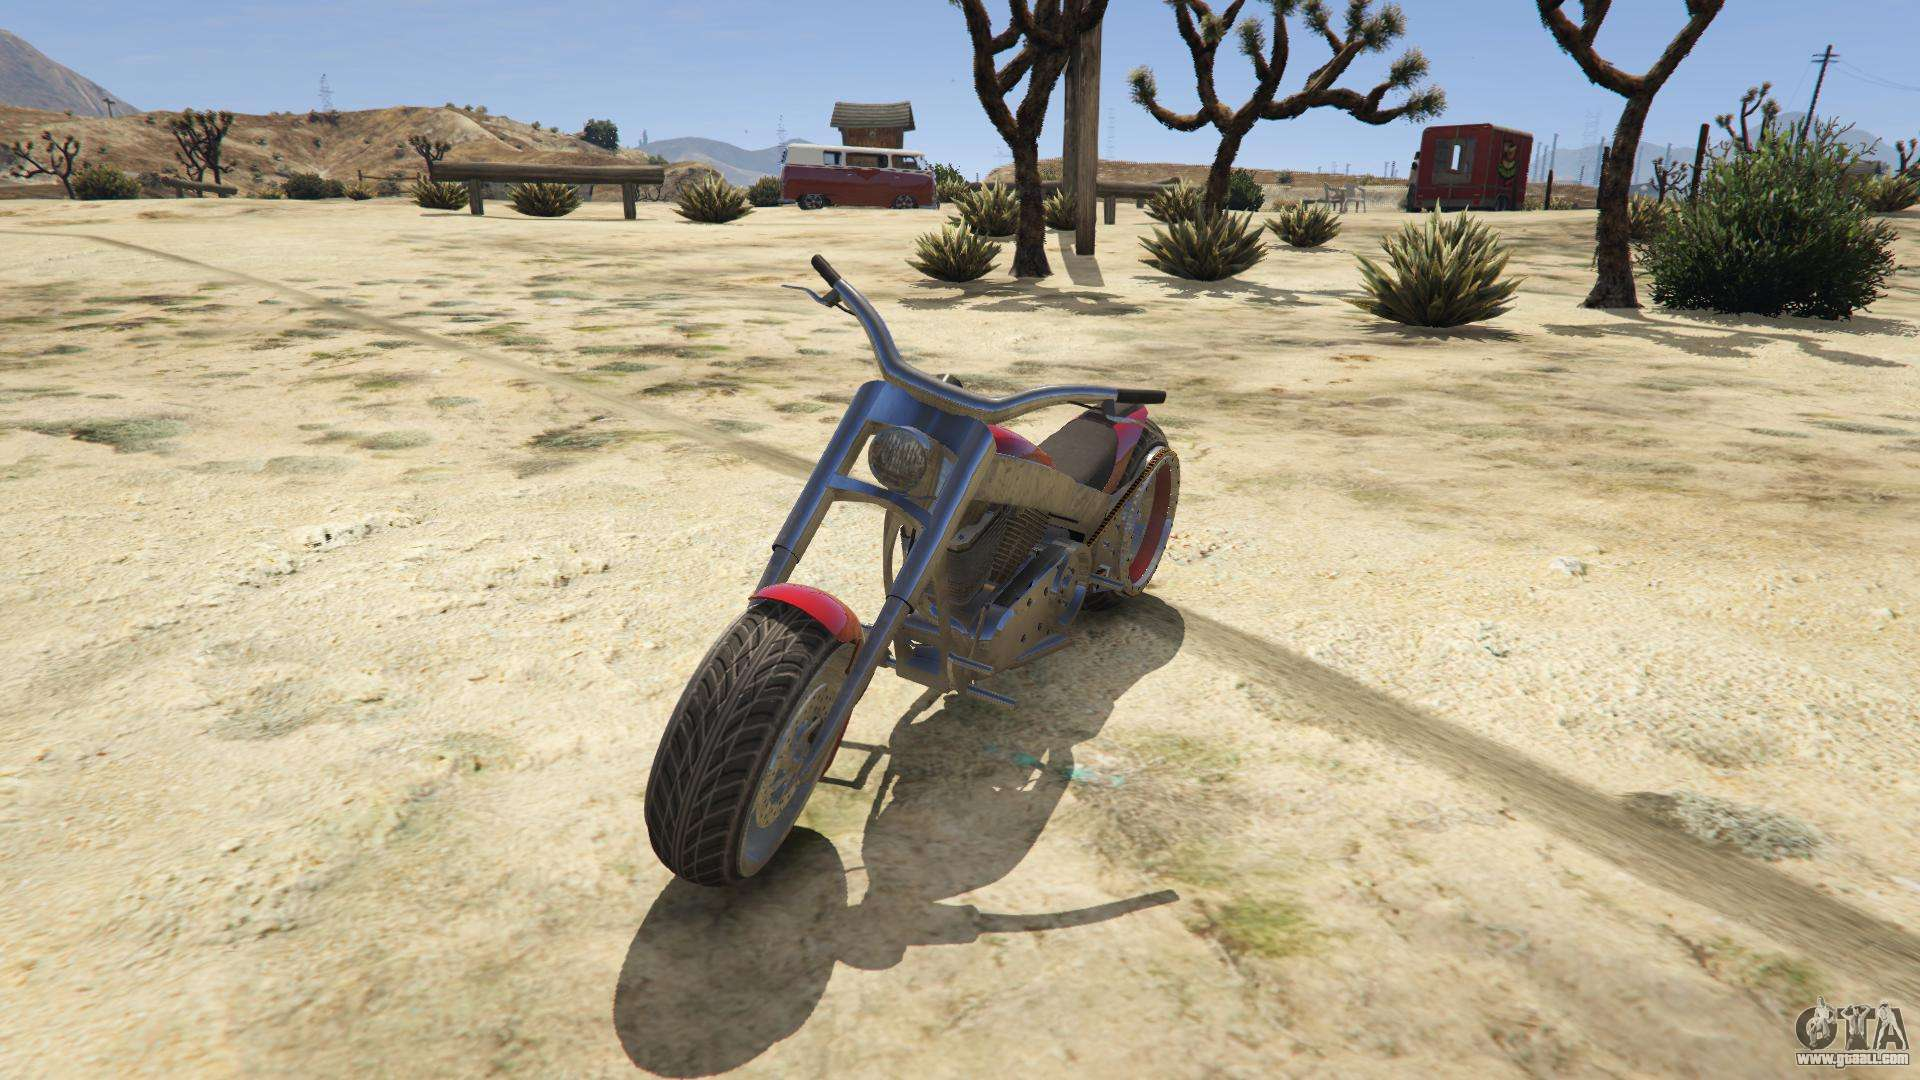 Liberty City Cycles Innovation from GTA 5